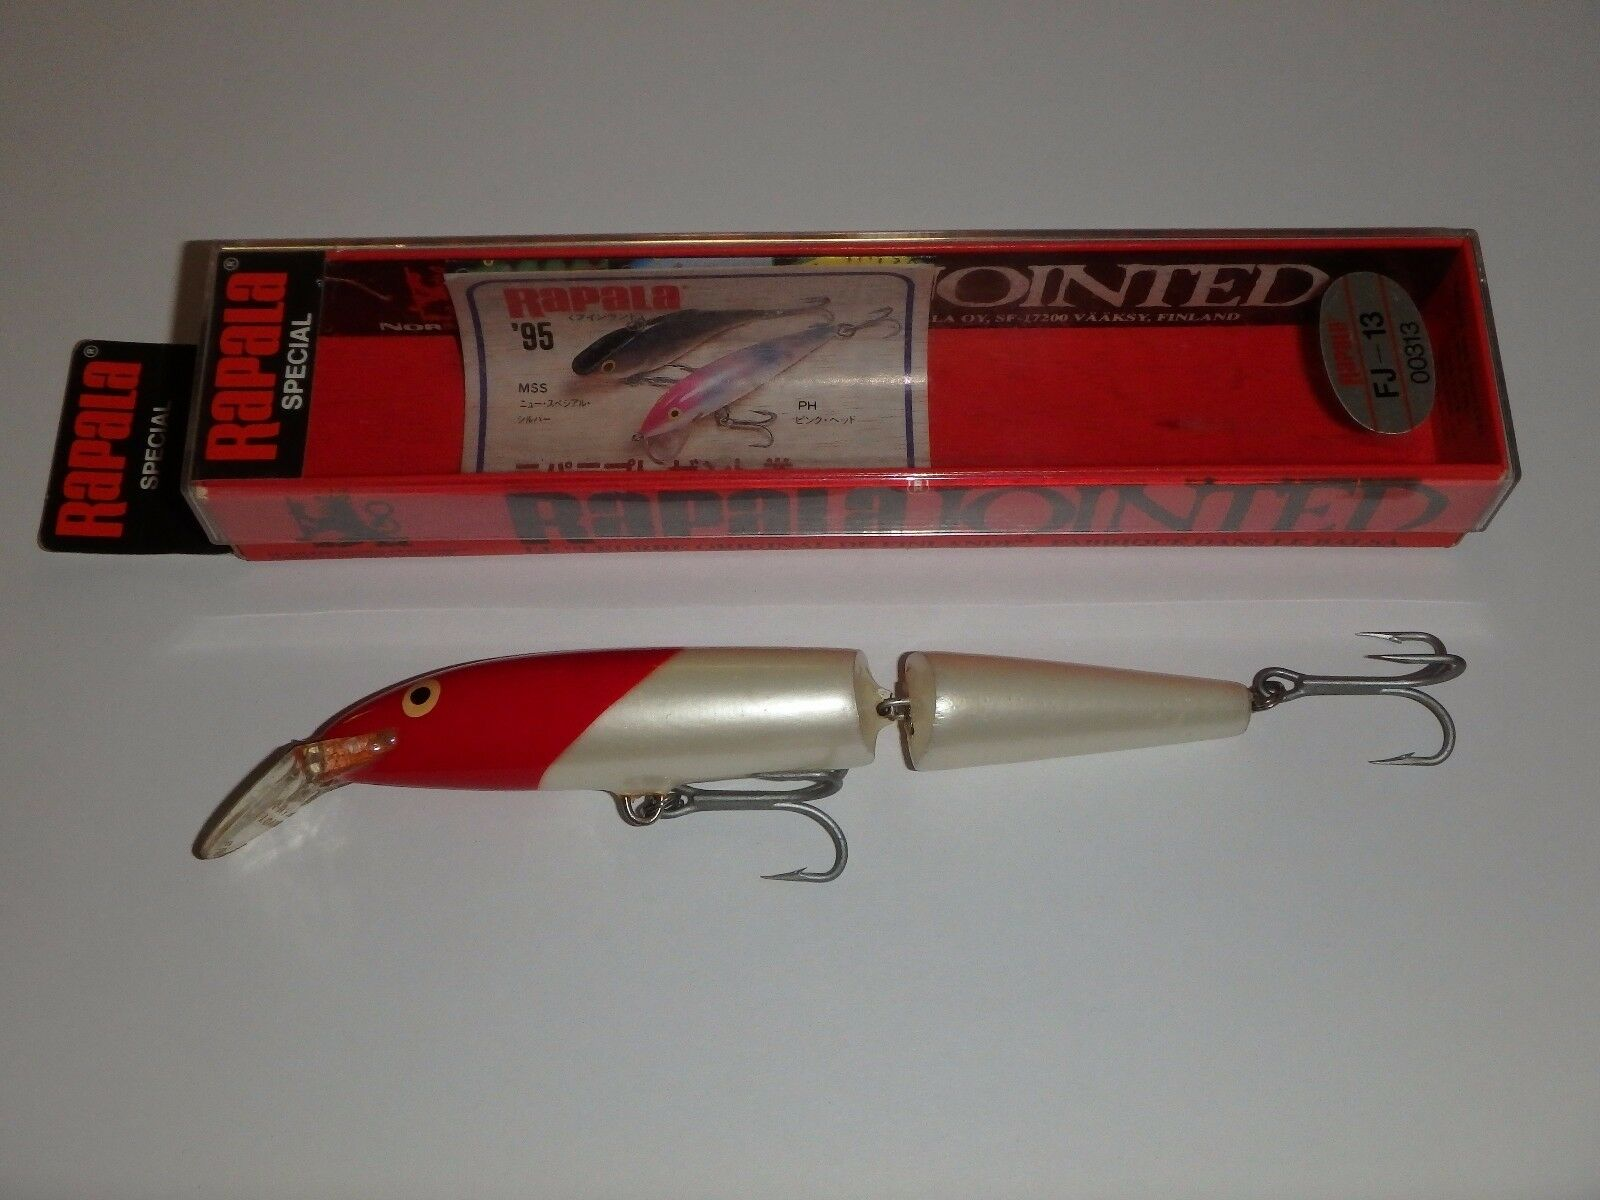 Rapala  Floating Jointed 13 RH Red Head Fishing Lure Japan Special  shop now